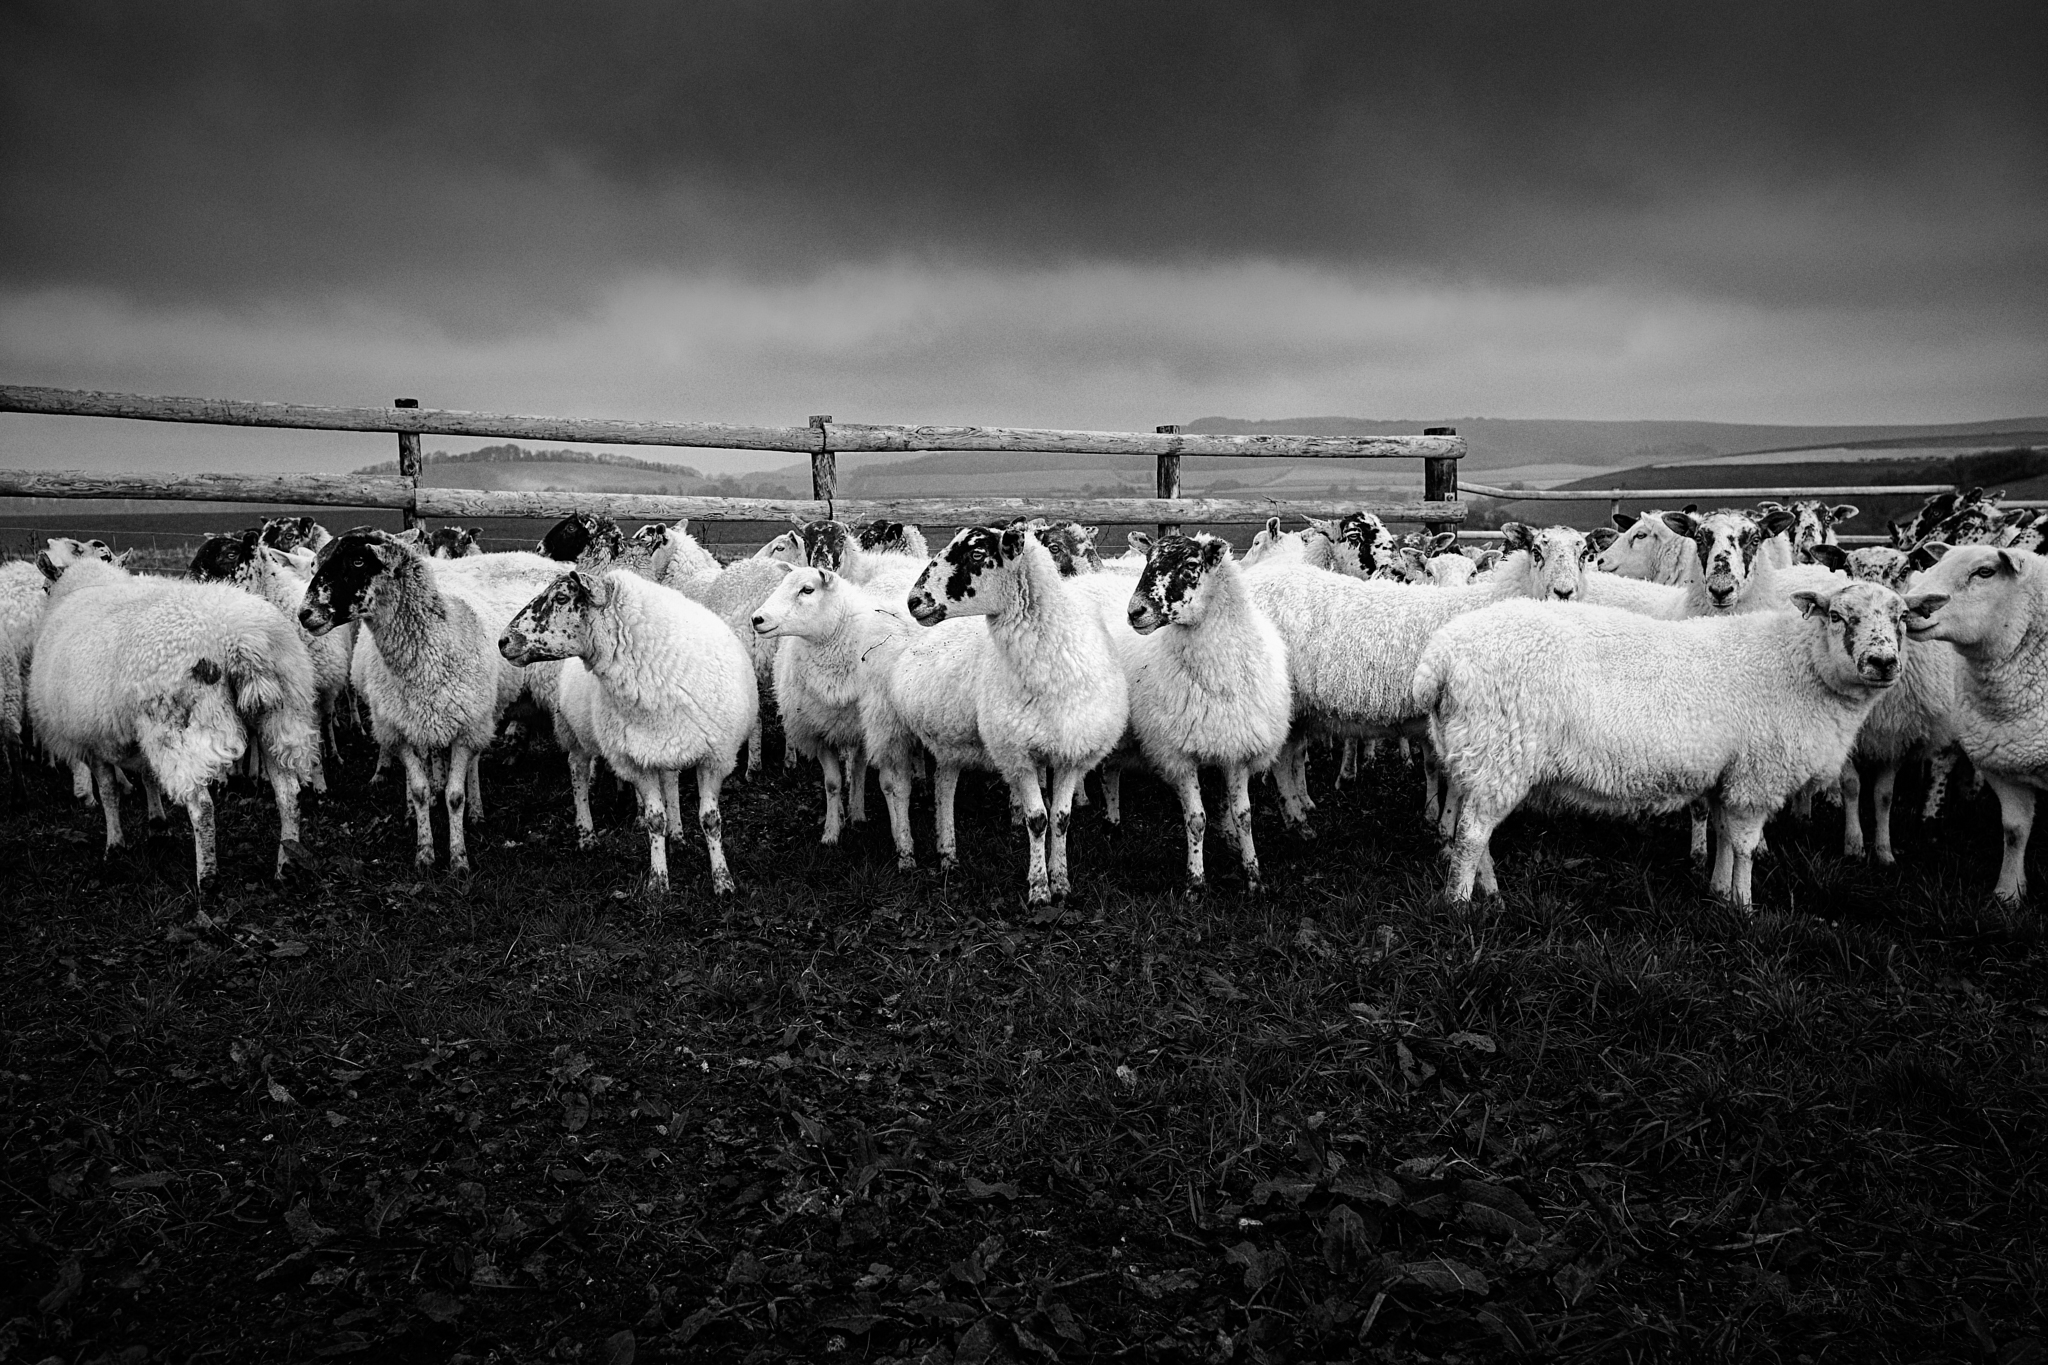 A flock of sheep on Mere Downs, Wiltshire